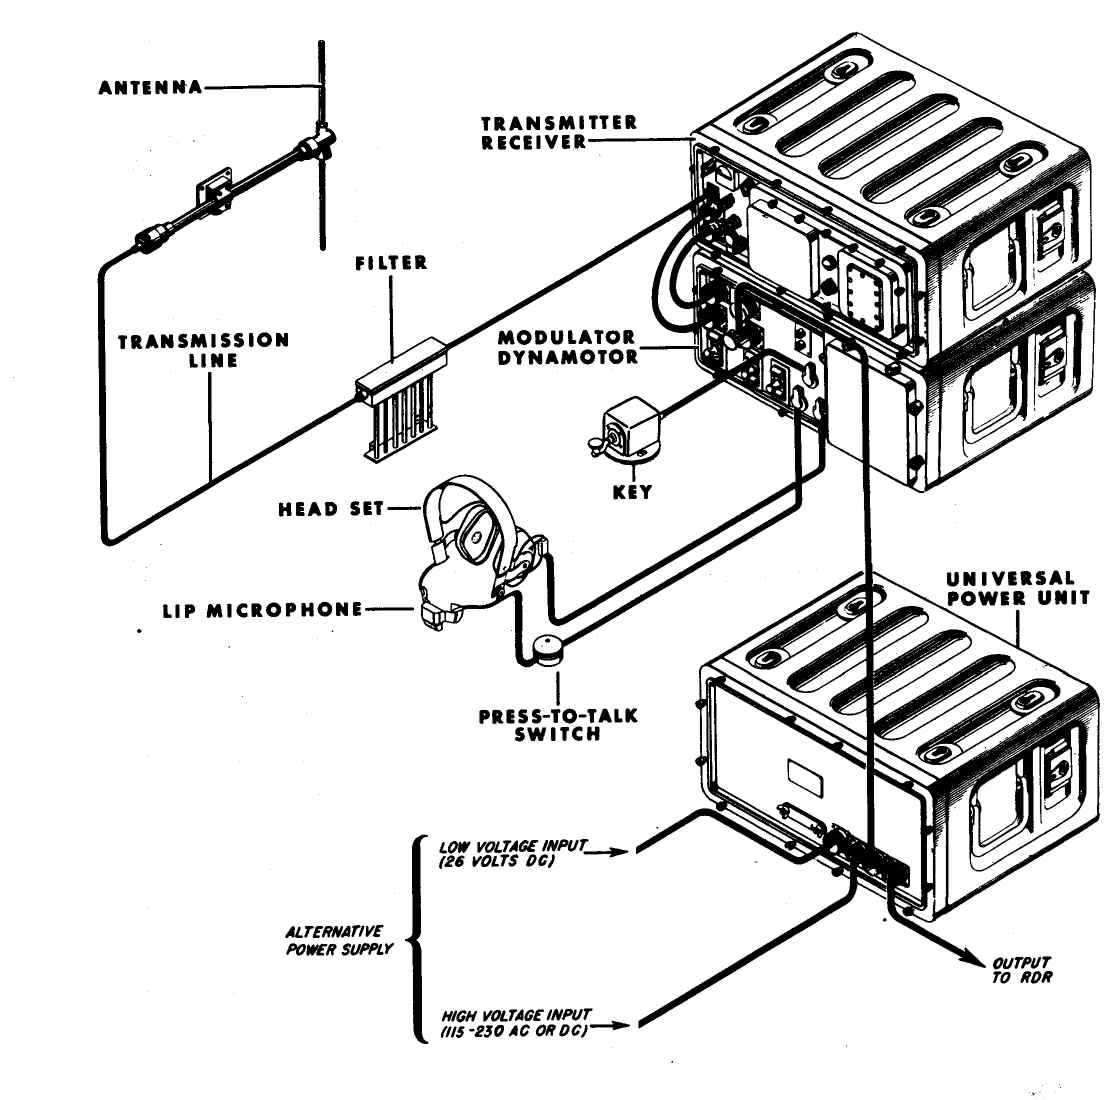 Navy WWII Portable, Transportable, and Mobile Transmitter